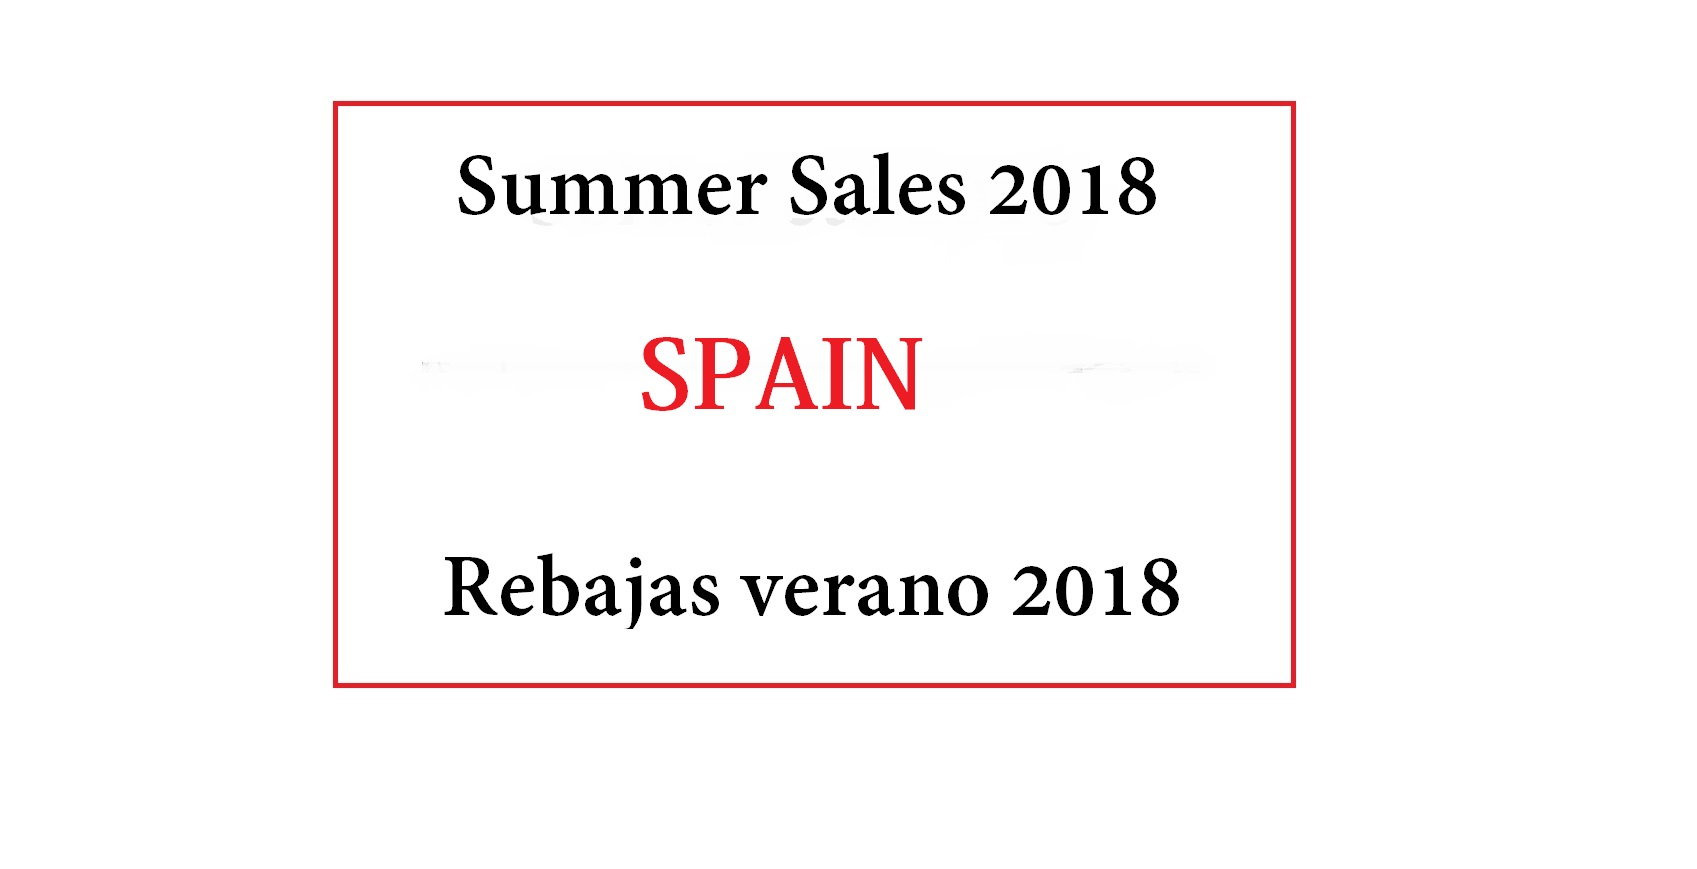 When and where are the best places to do the summer sales 2018 in Spain